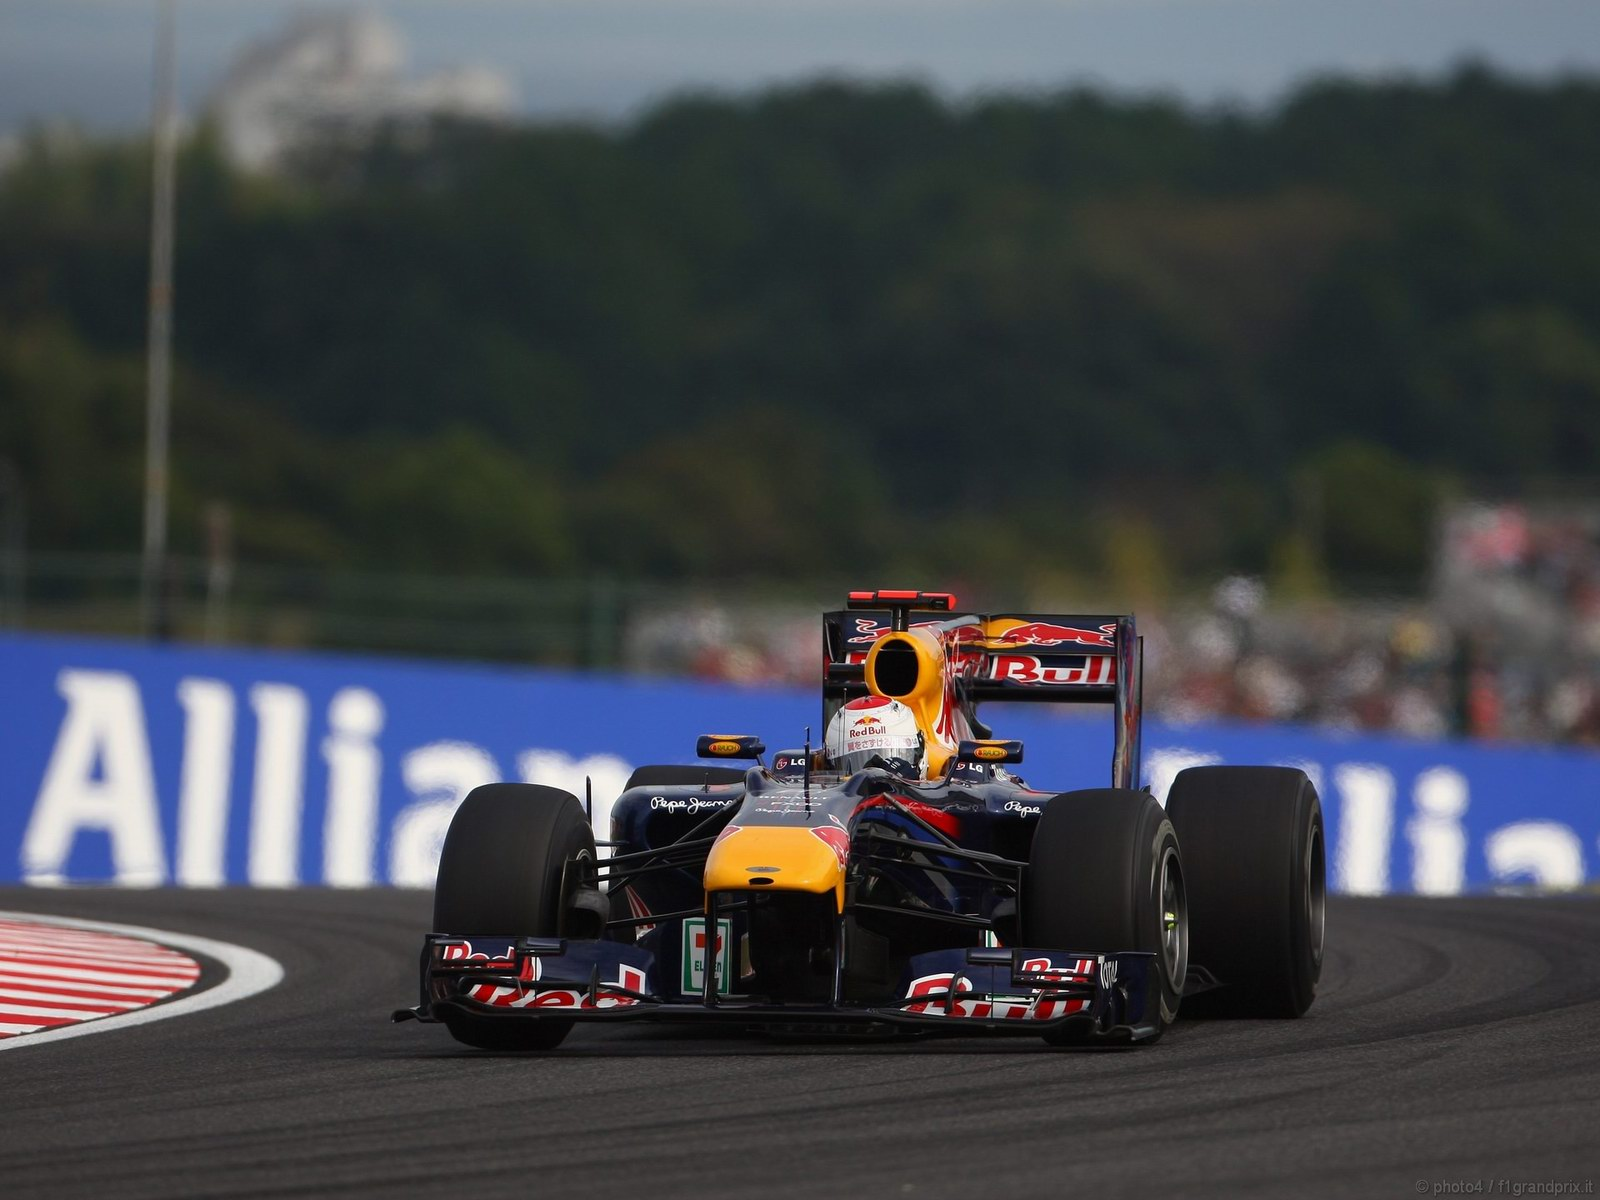 pojazdy - formula1 - gp_giappone_wallpapers_000066